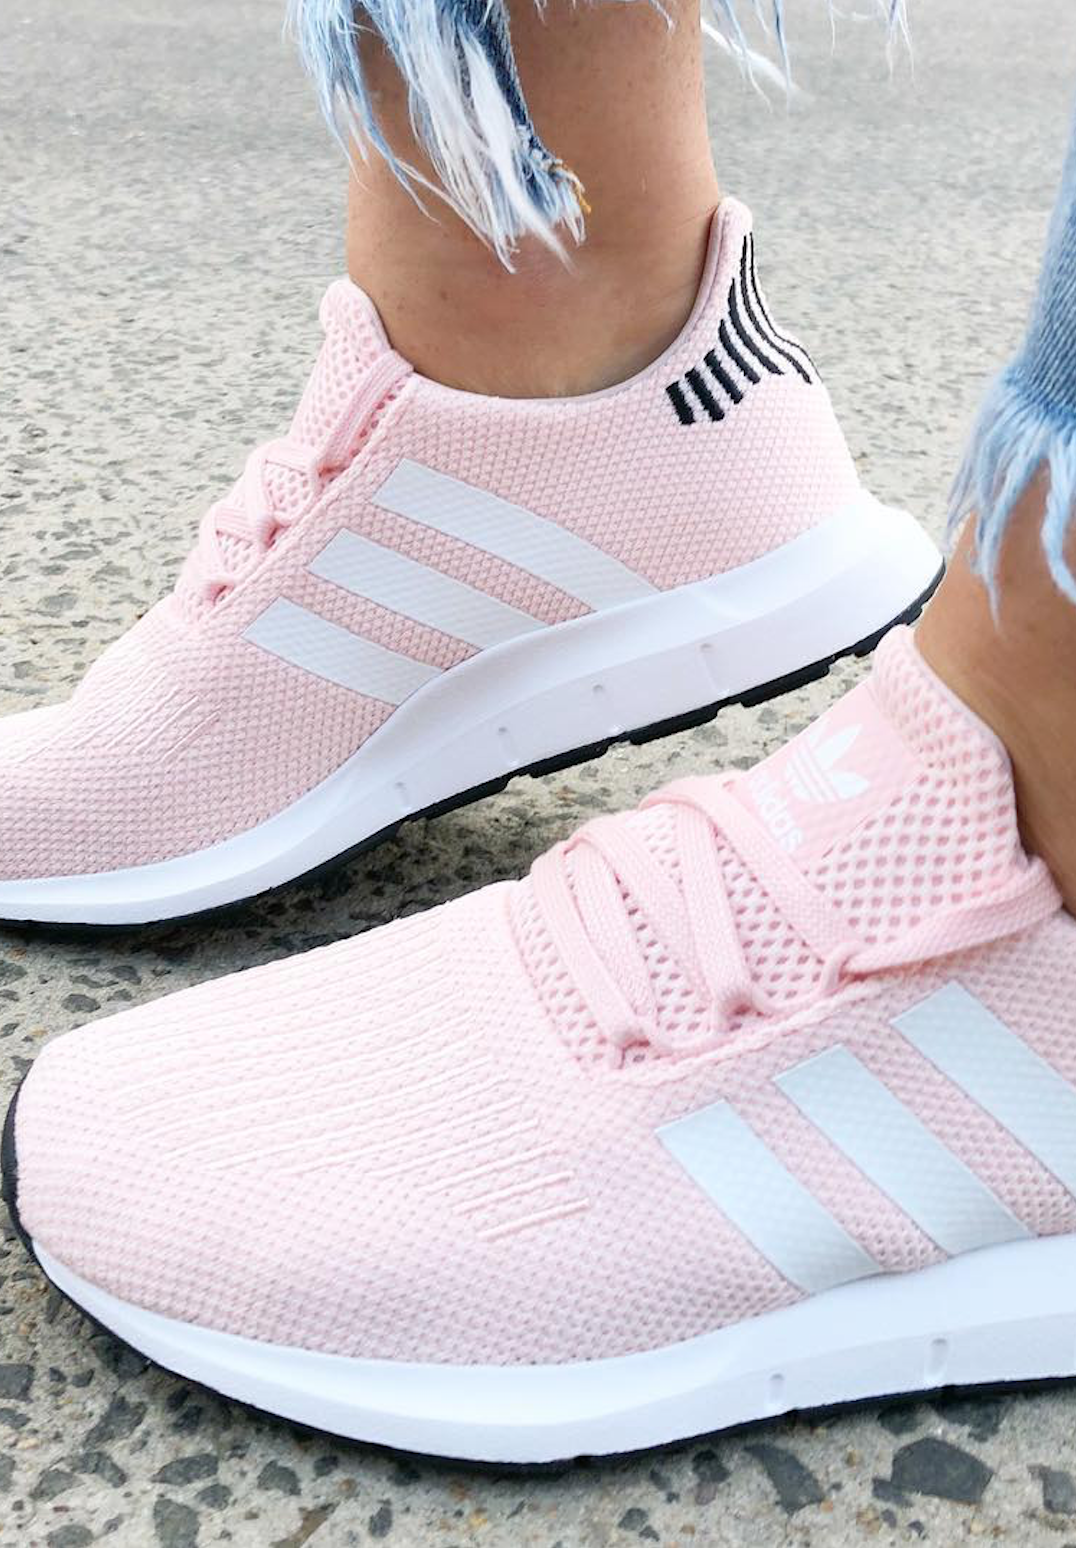 sale retailer 48fa6 cf323 adidas Swift Run Sneakers in Icy Pink. Seriously stylish shoes 2018.